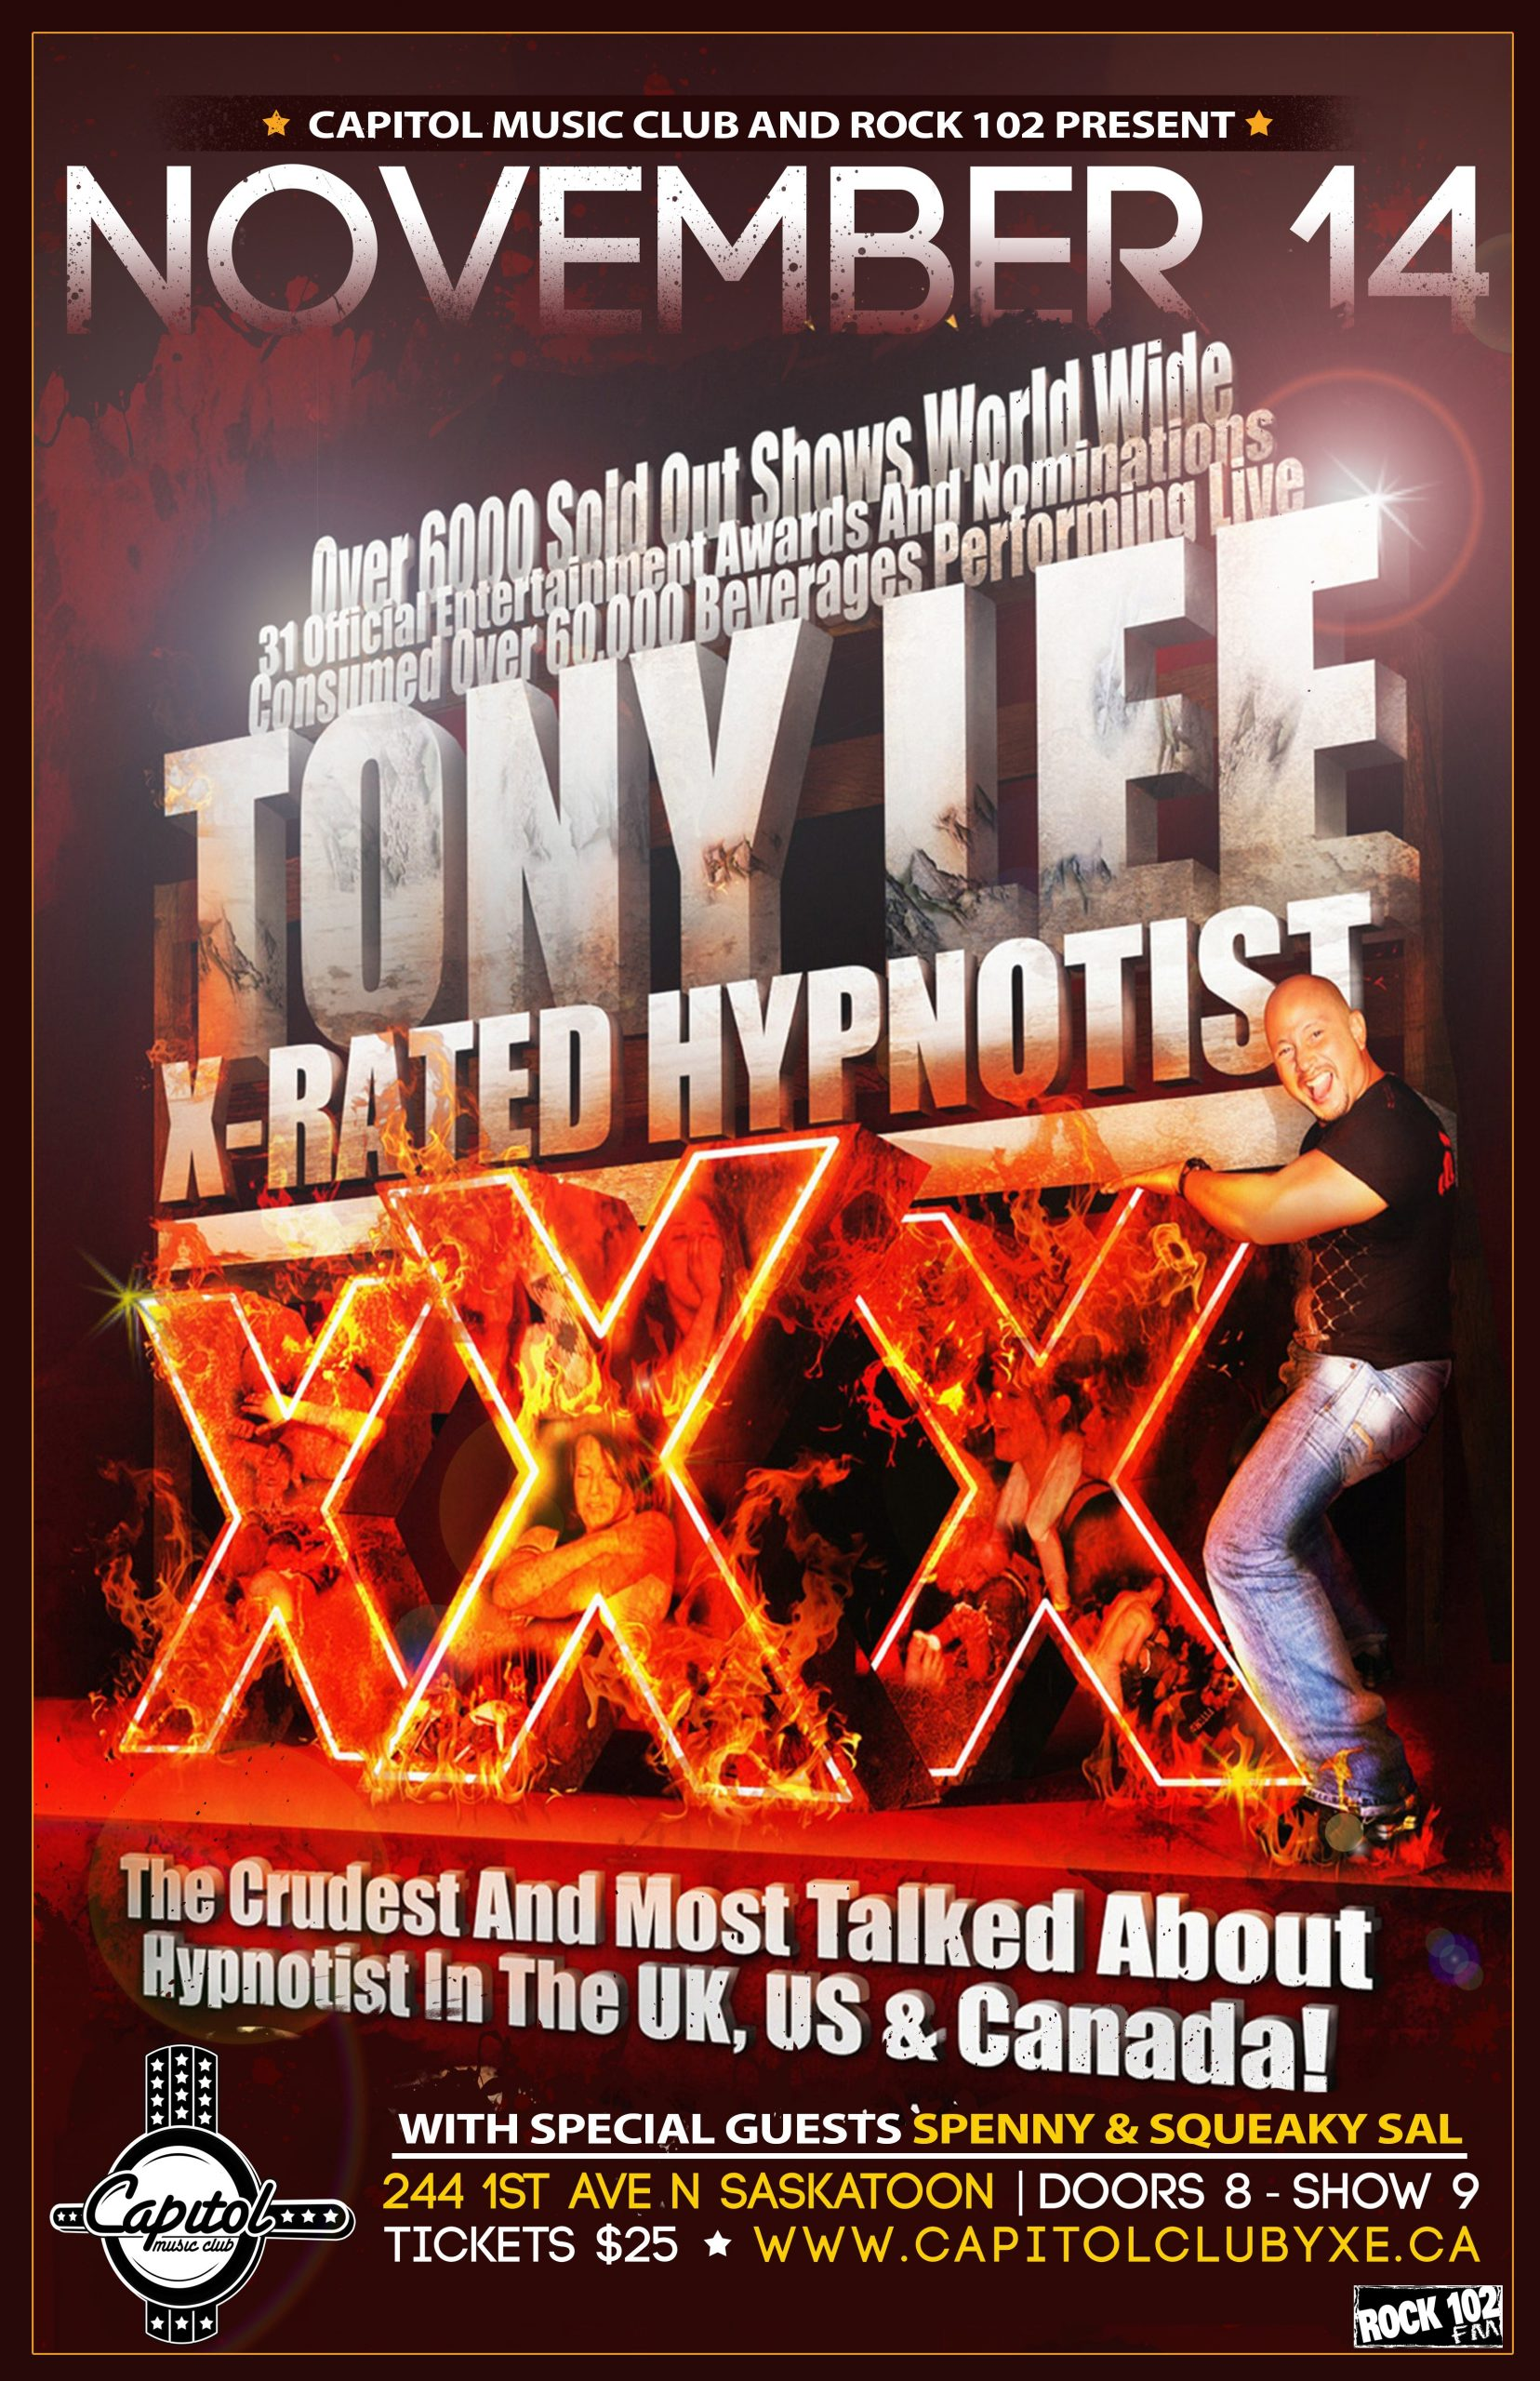 Tony Lee X-Rated Hypnotist